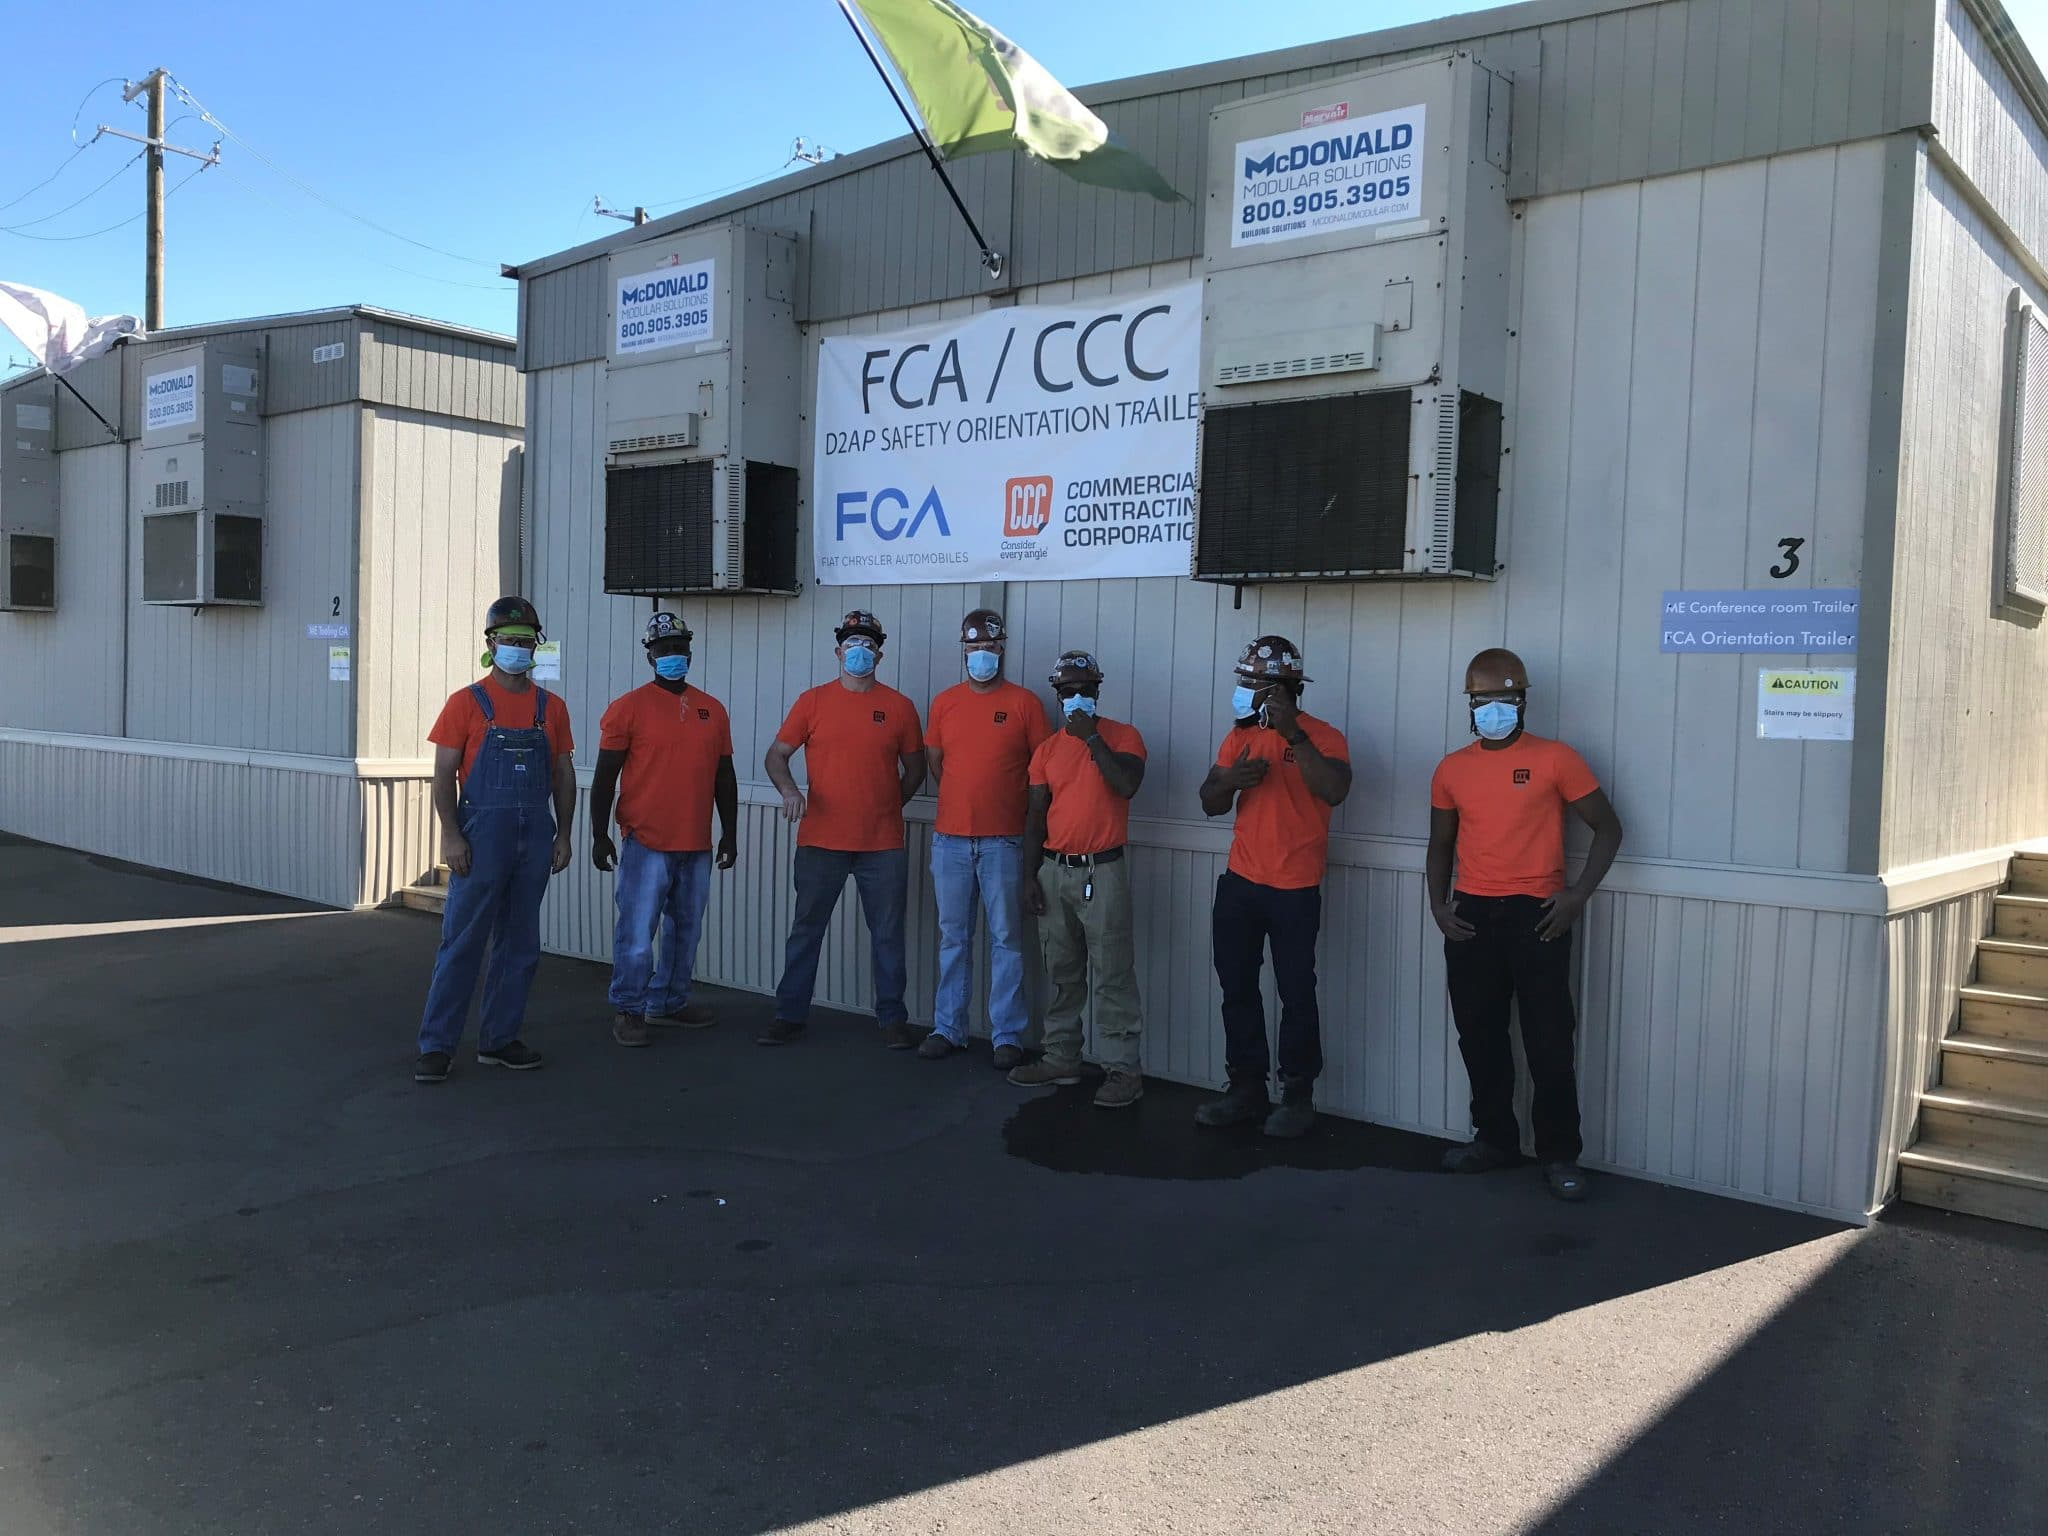 workers in orange shirts stand against trailer